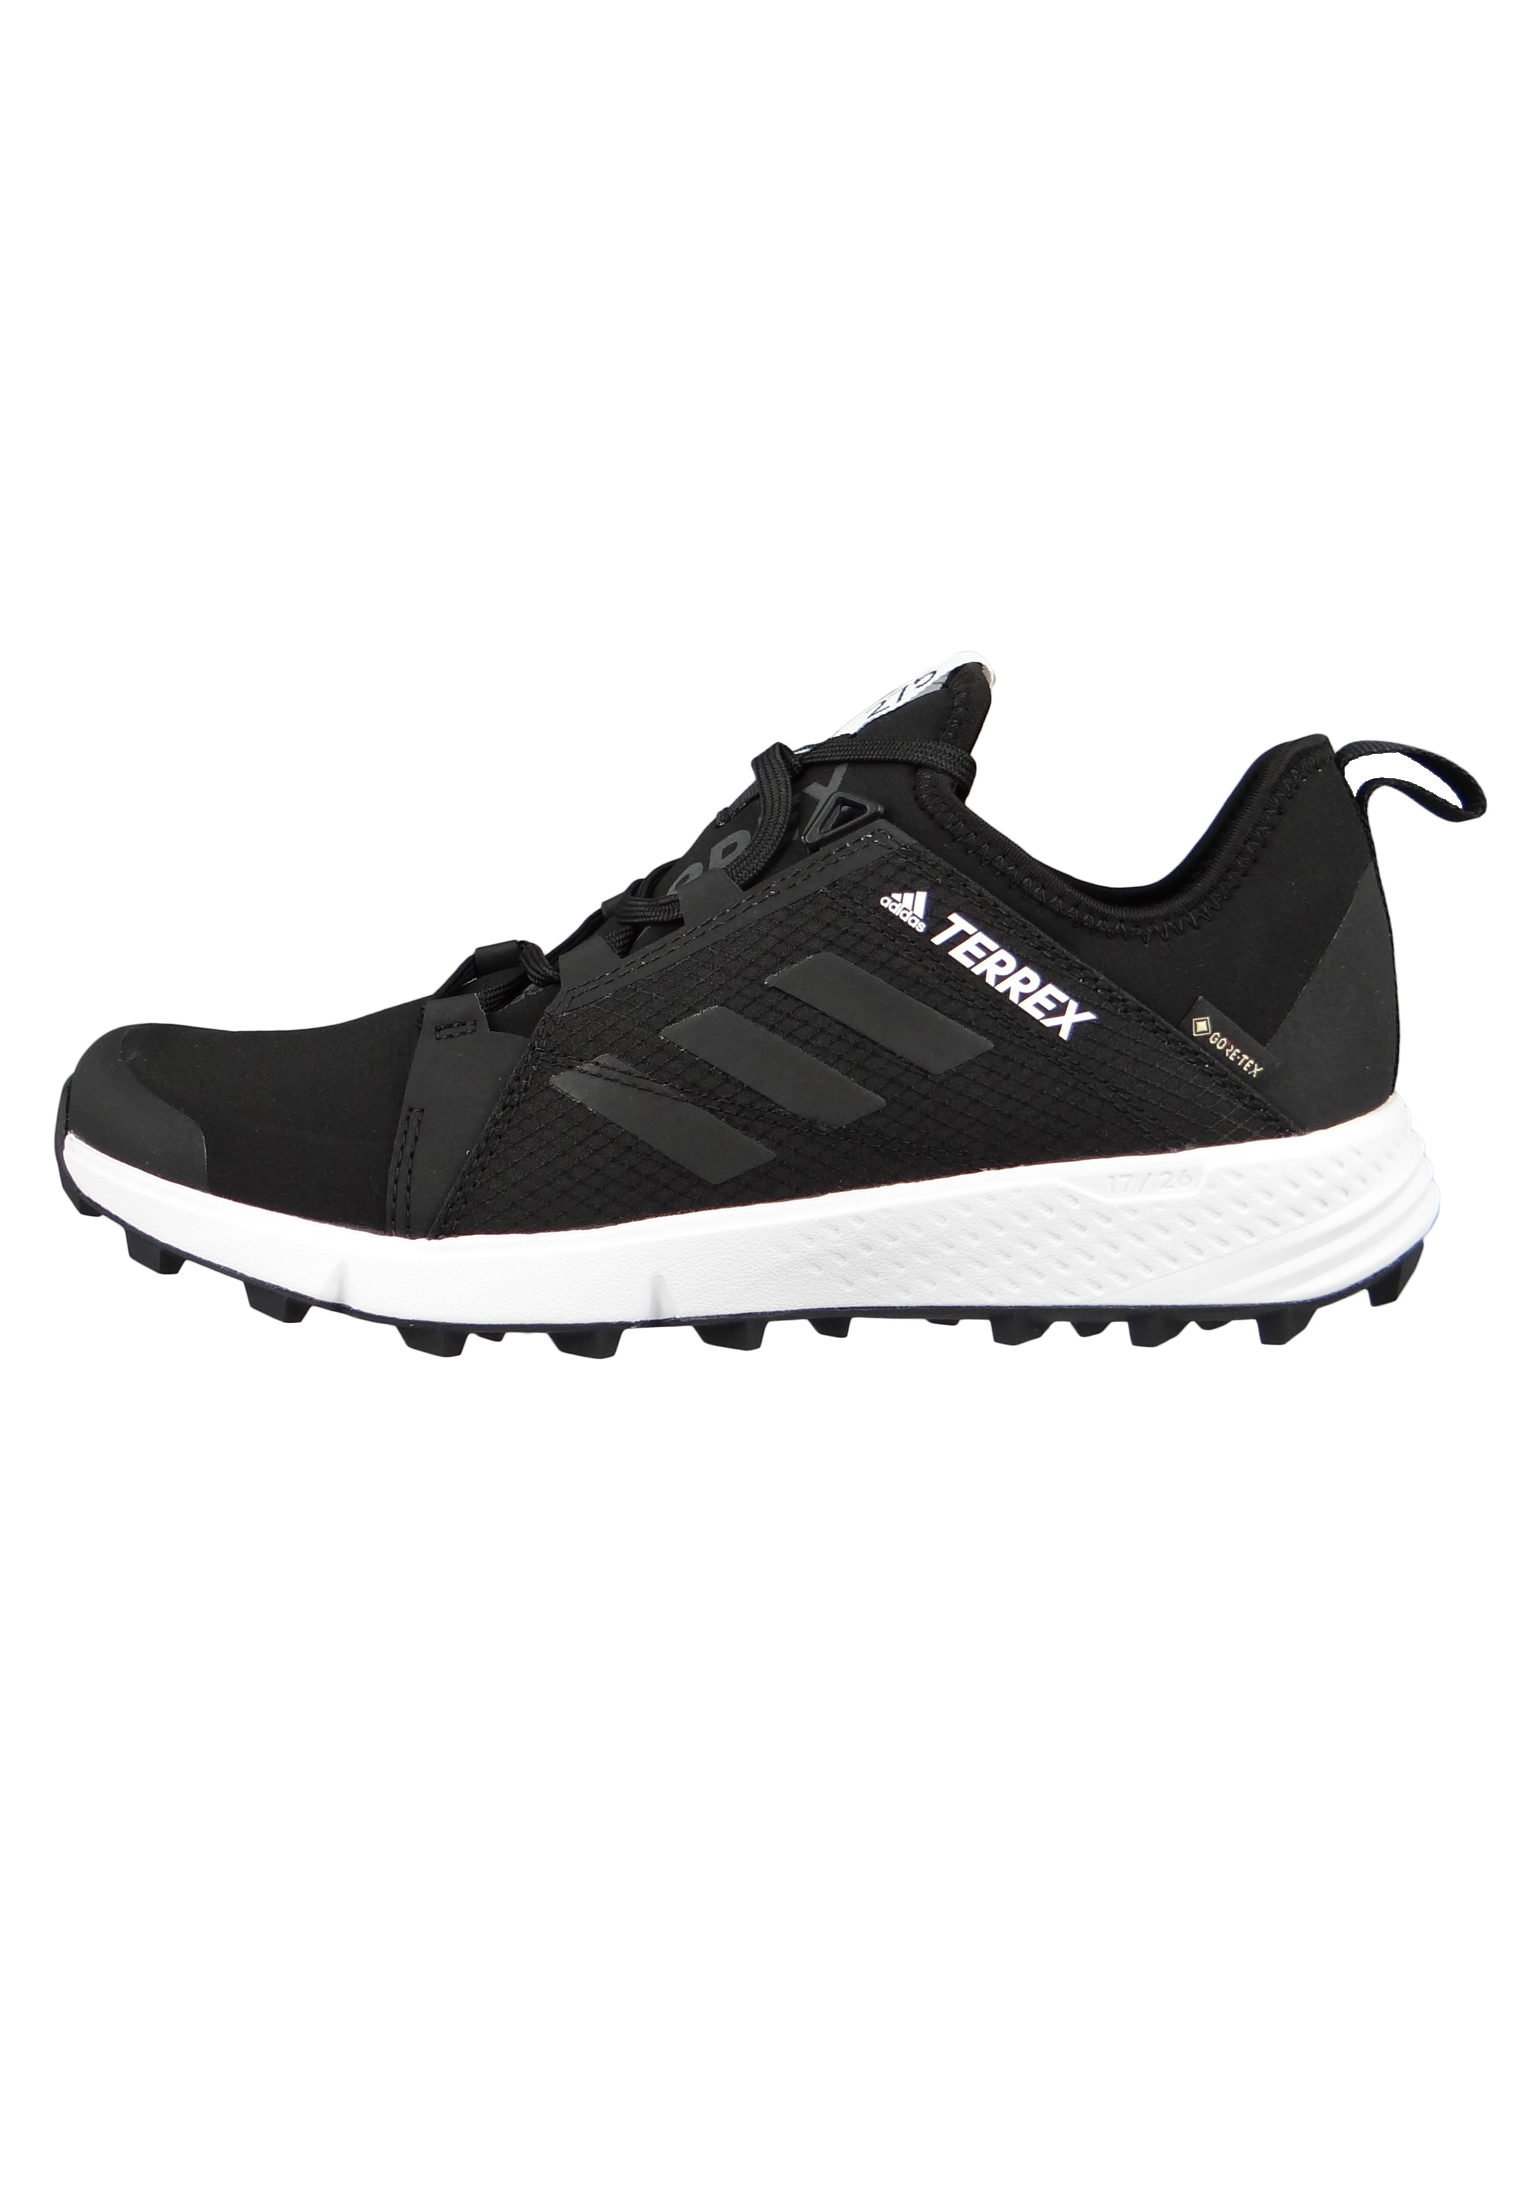 adidas TERREX AGRAVIC SPEED GTX CM8569 Herren Outdoor Trailrunning core blackcore blackftwr white Schwarz